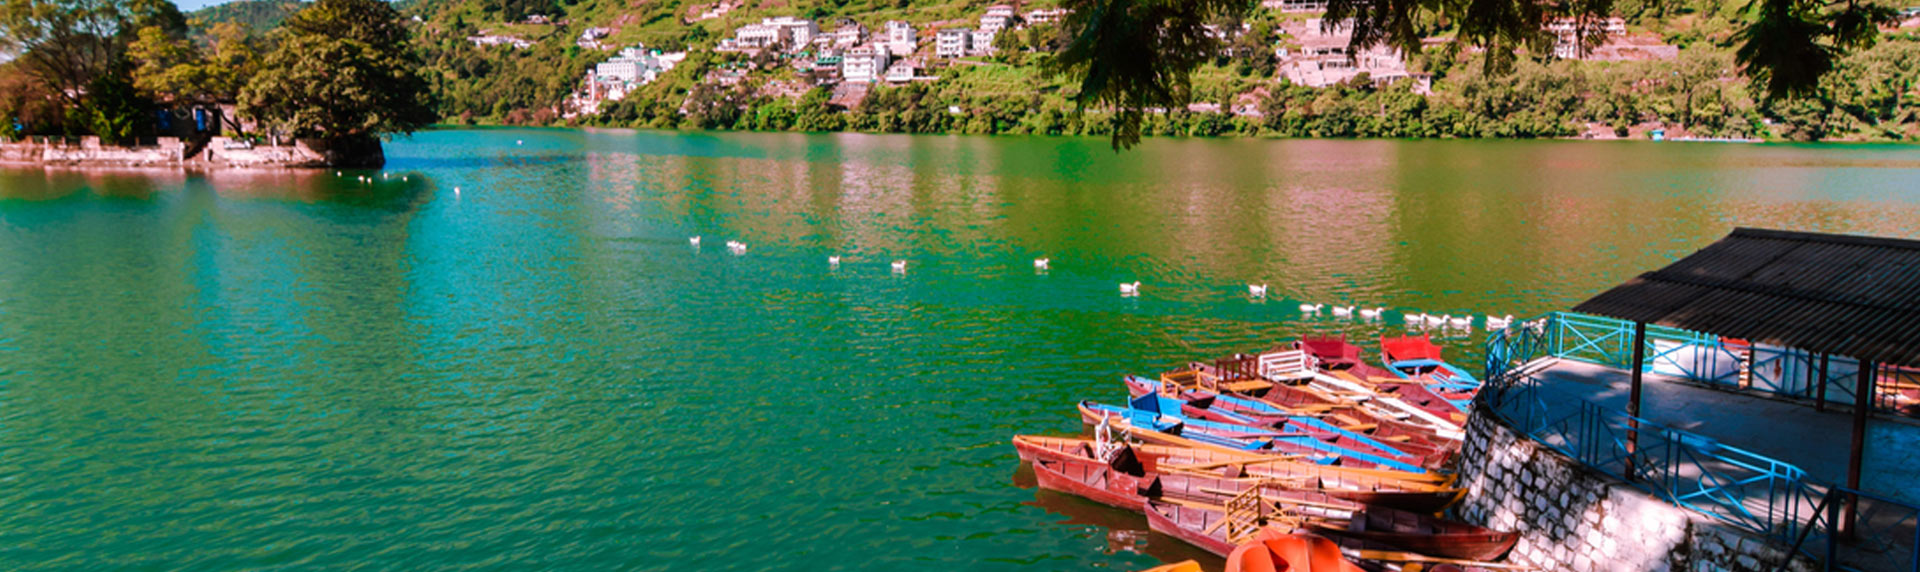 Boating in Bhimtal lake is one of the things to do in Uttarakhand with amazing Bhimtal sightseeing places